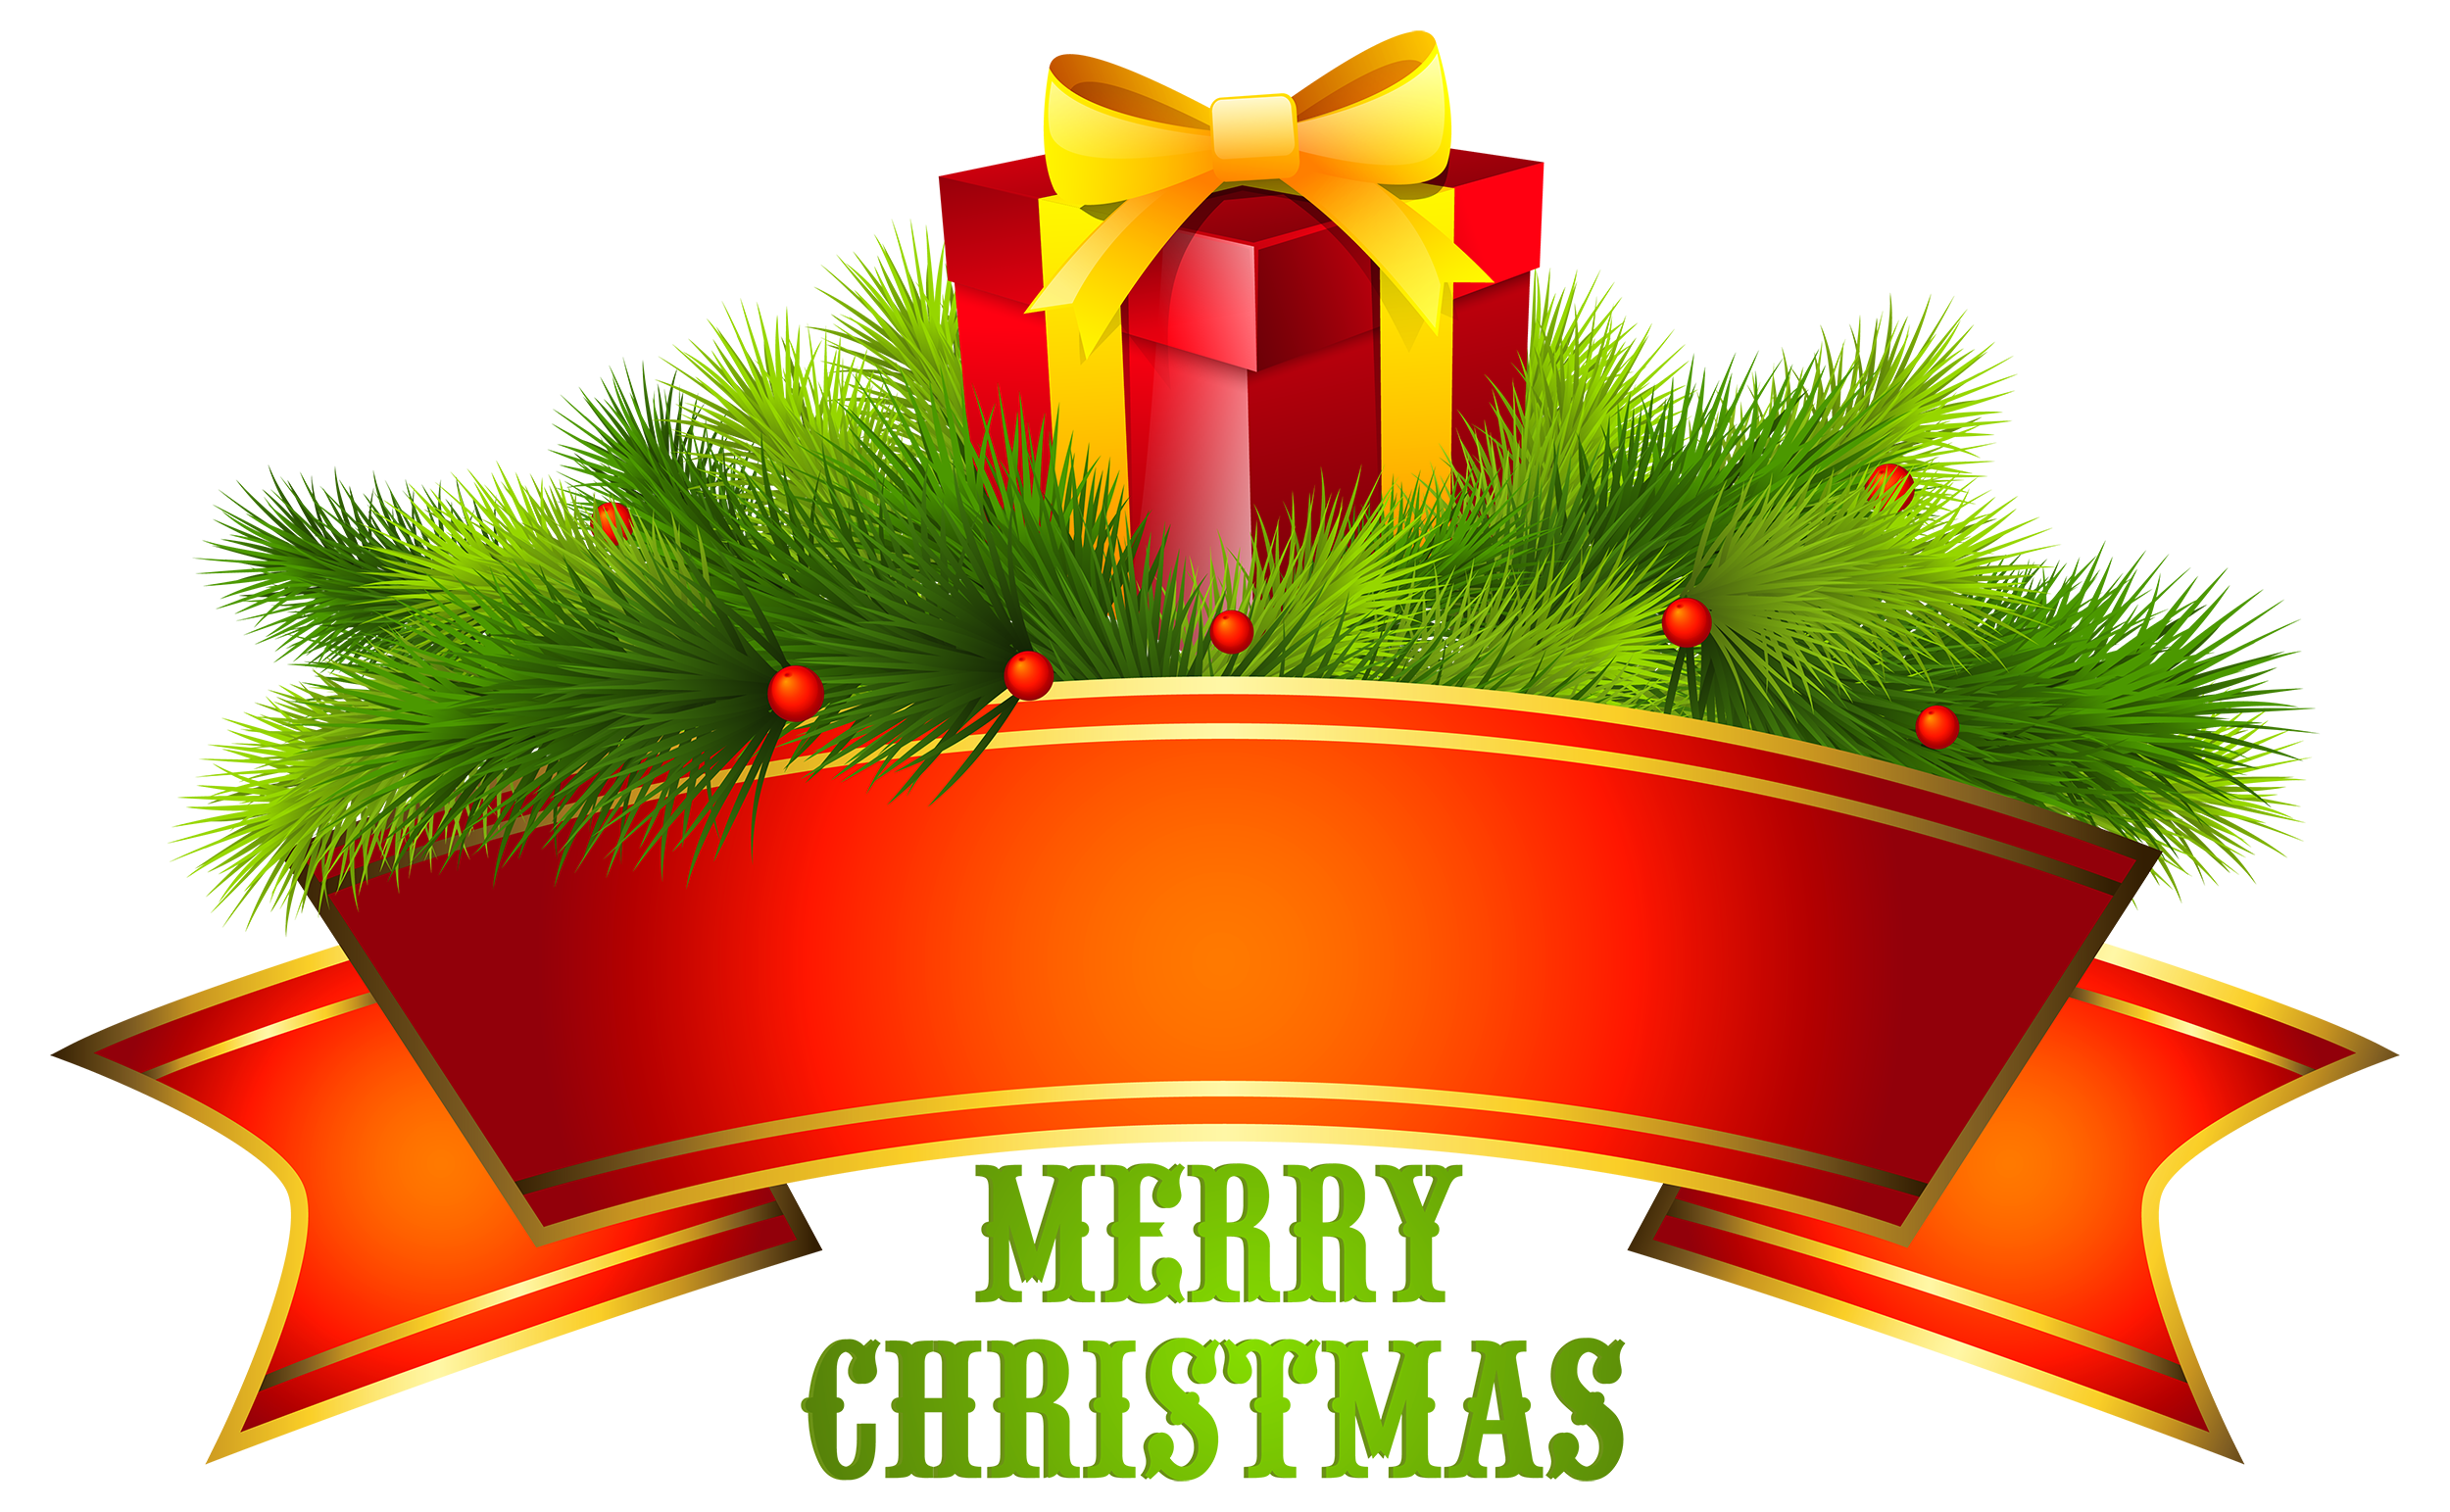 Merry text decor clipart. Christmas images png